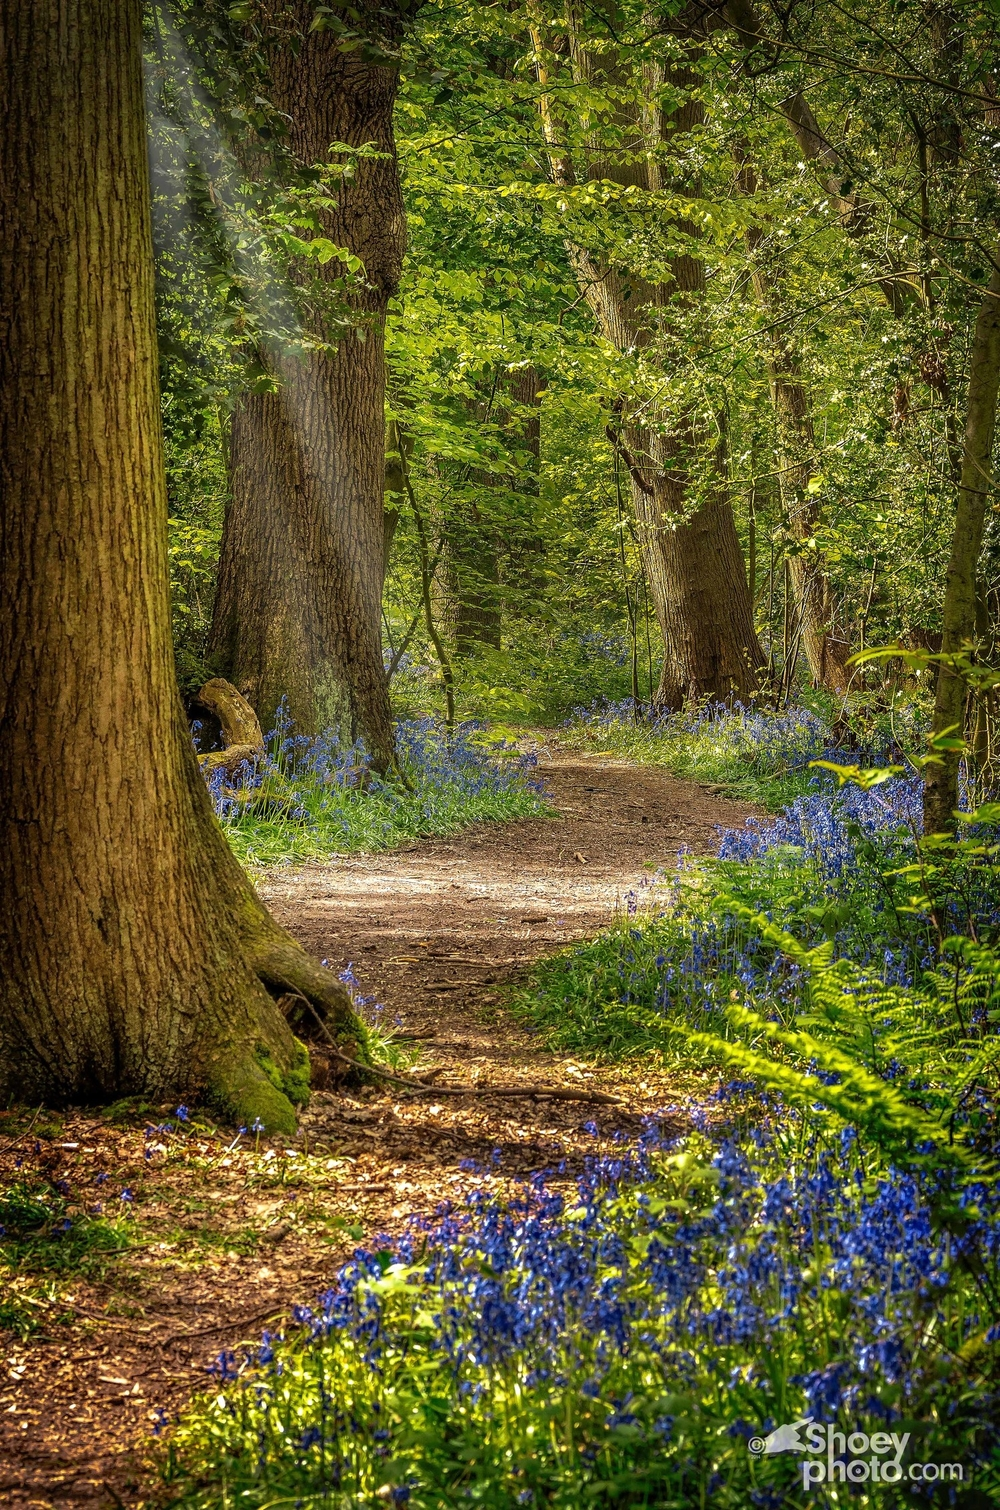 One of the woodland paths.   (Click   image to enlarge)